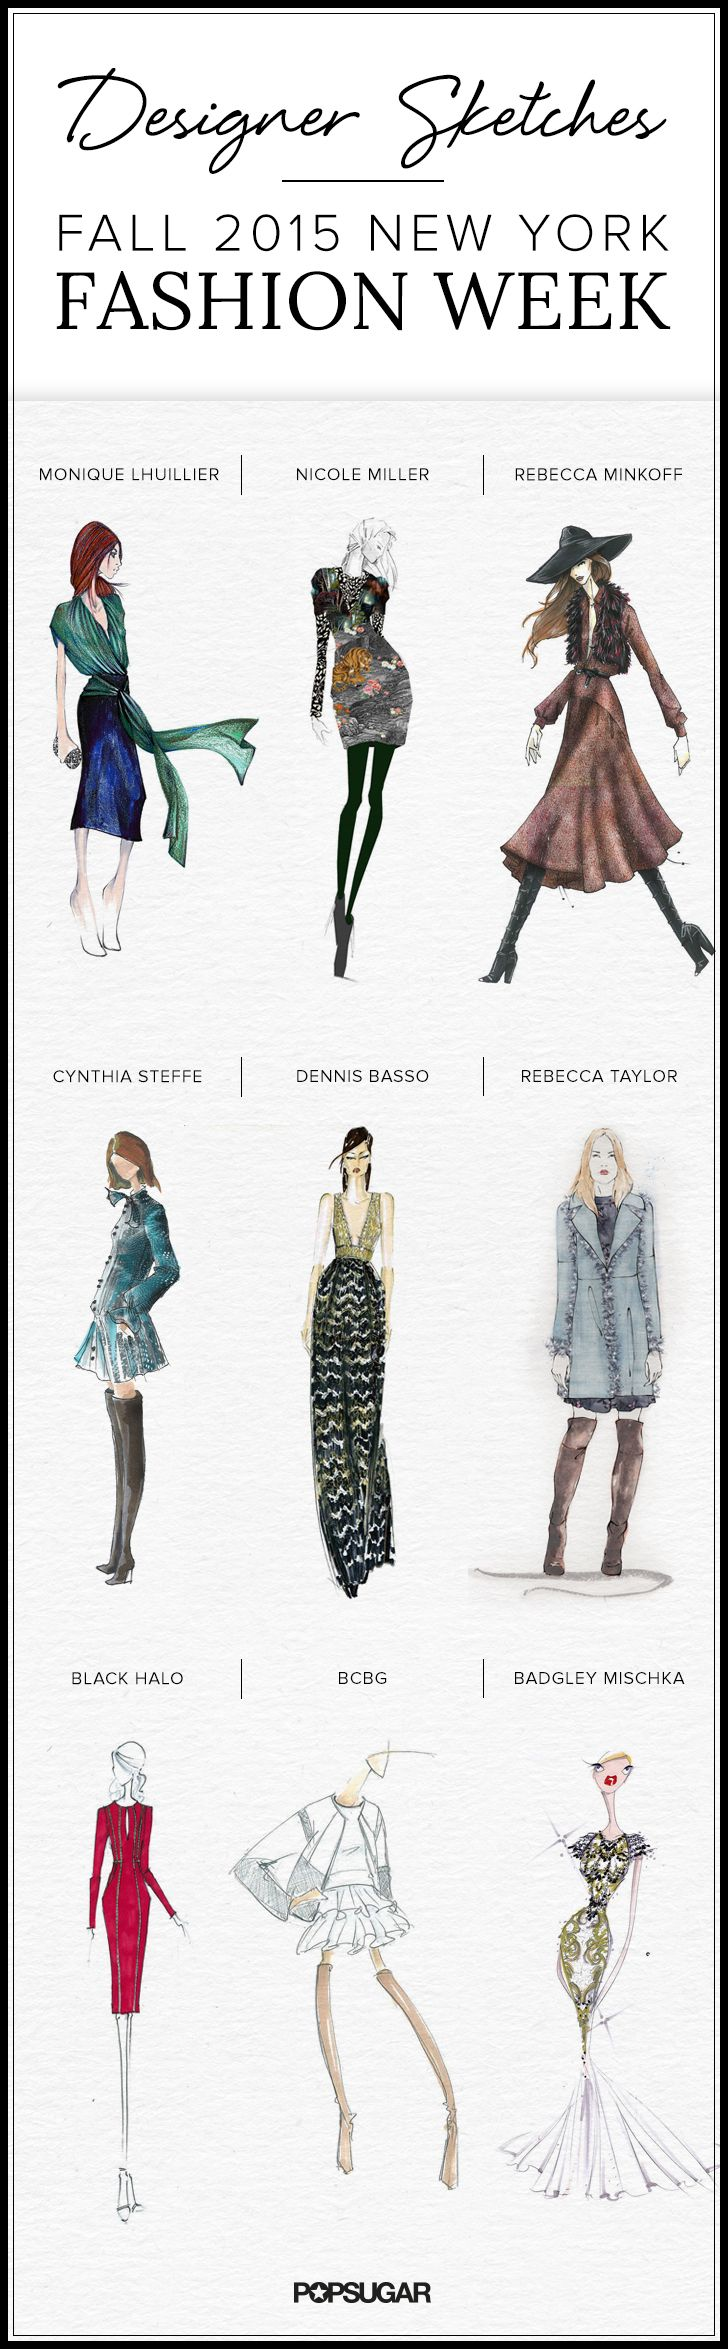 Designers illustrate their Fall 2015 runway inspiration. Click to see all the sketches!